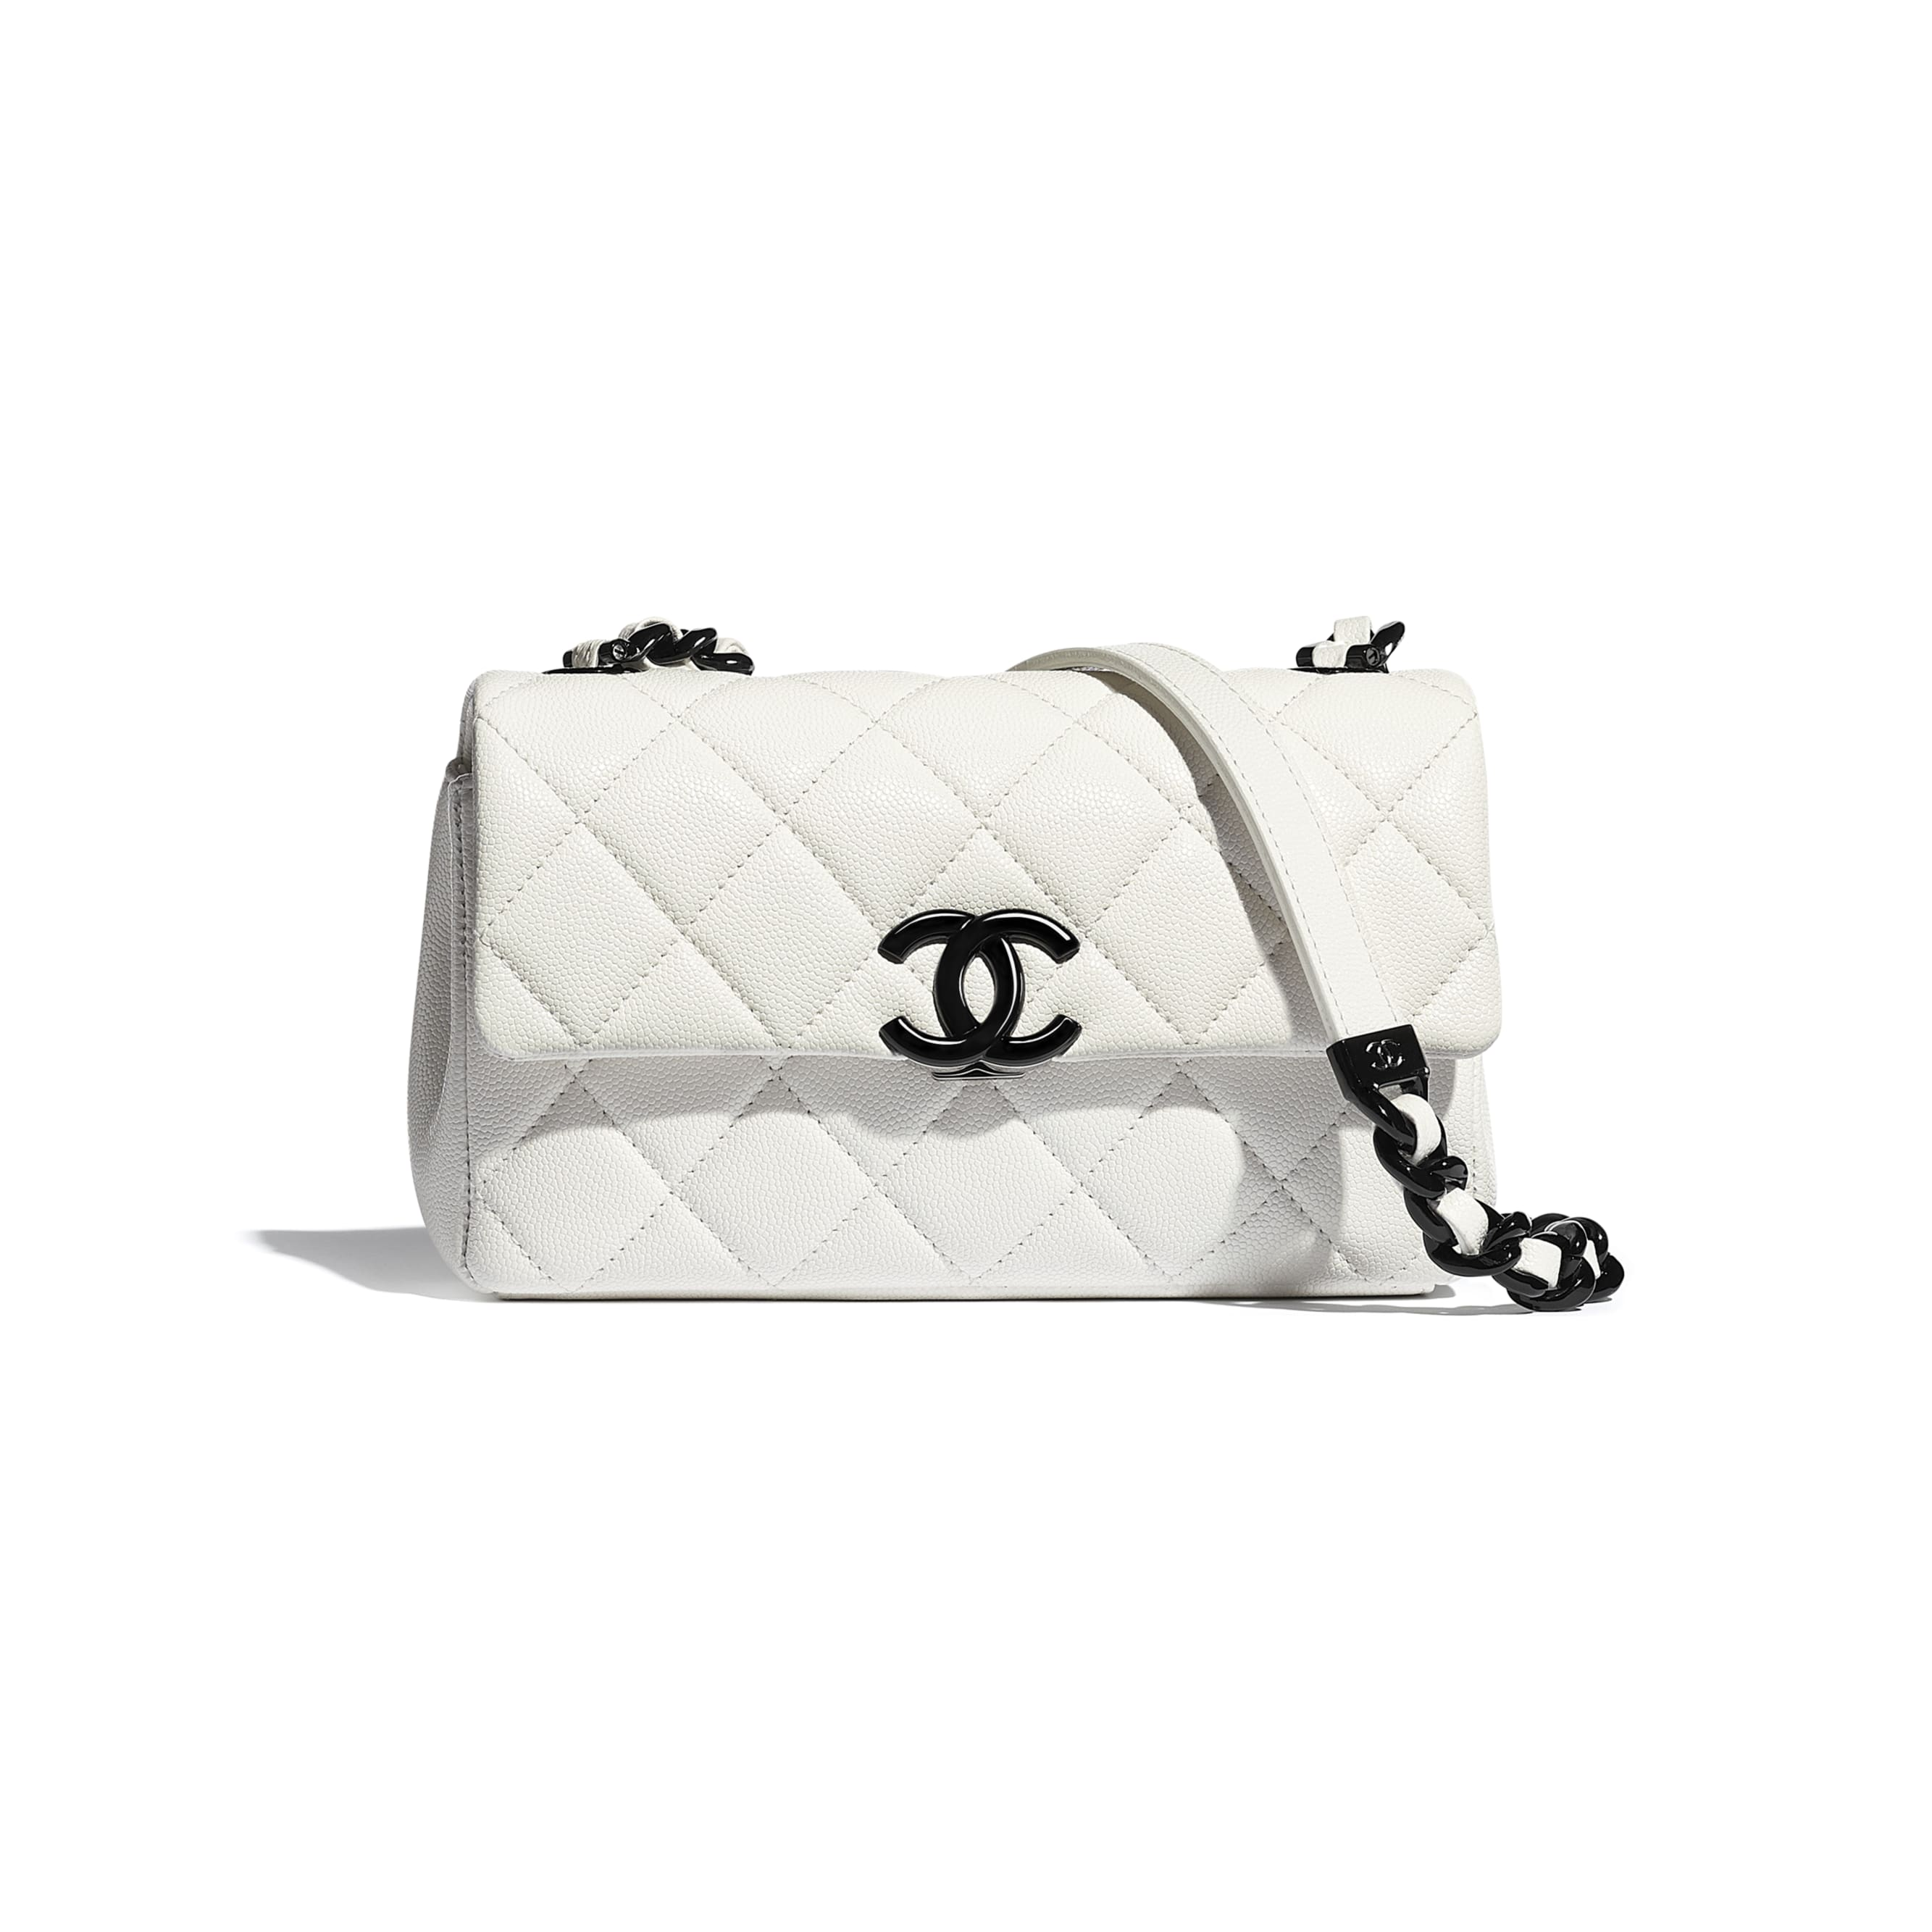 Small Flap Bag - White & Black - Grained Calfskin & Lacquered Metal - CHANEL - Default view - see standard sized version